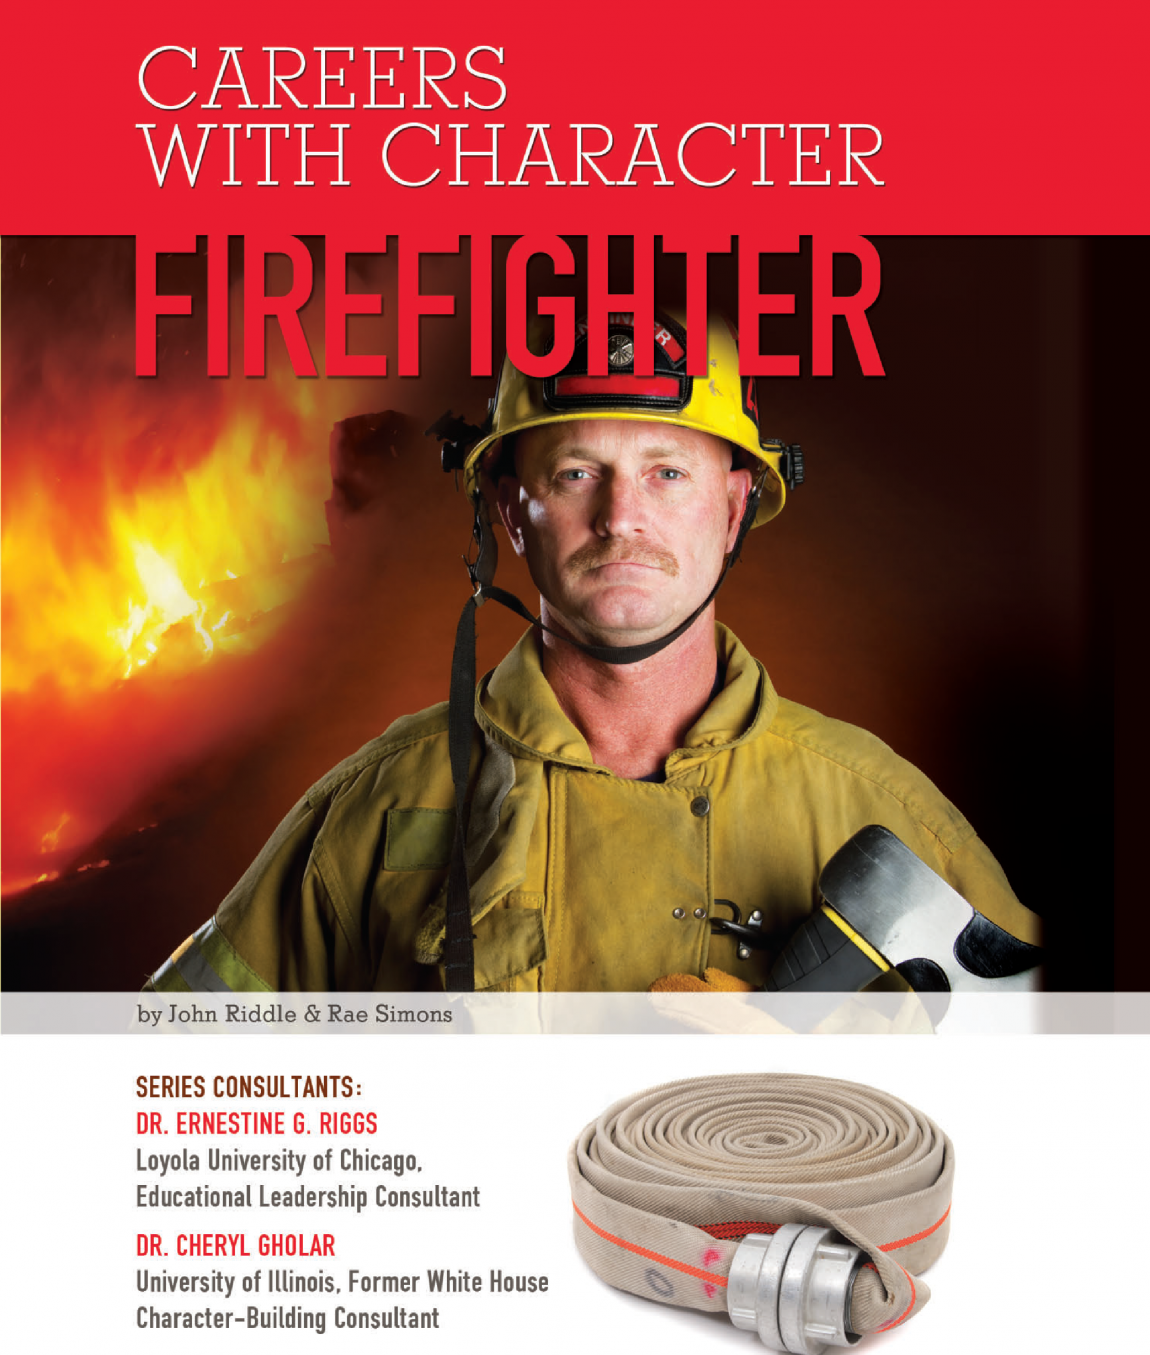 firefighter-01.png